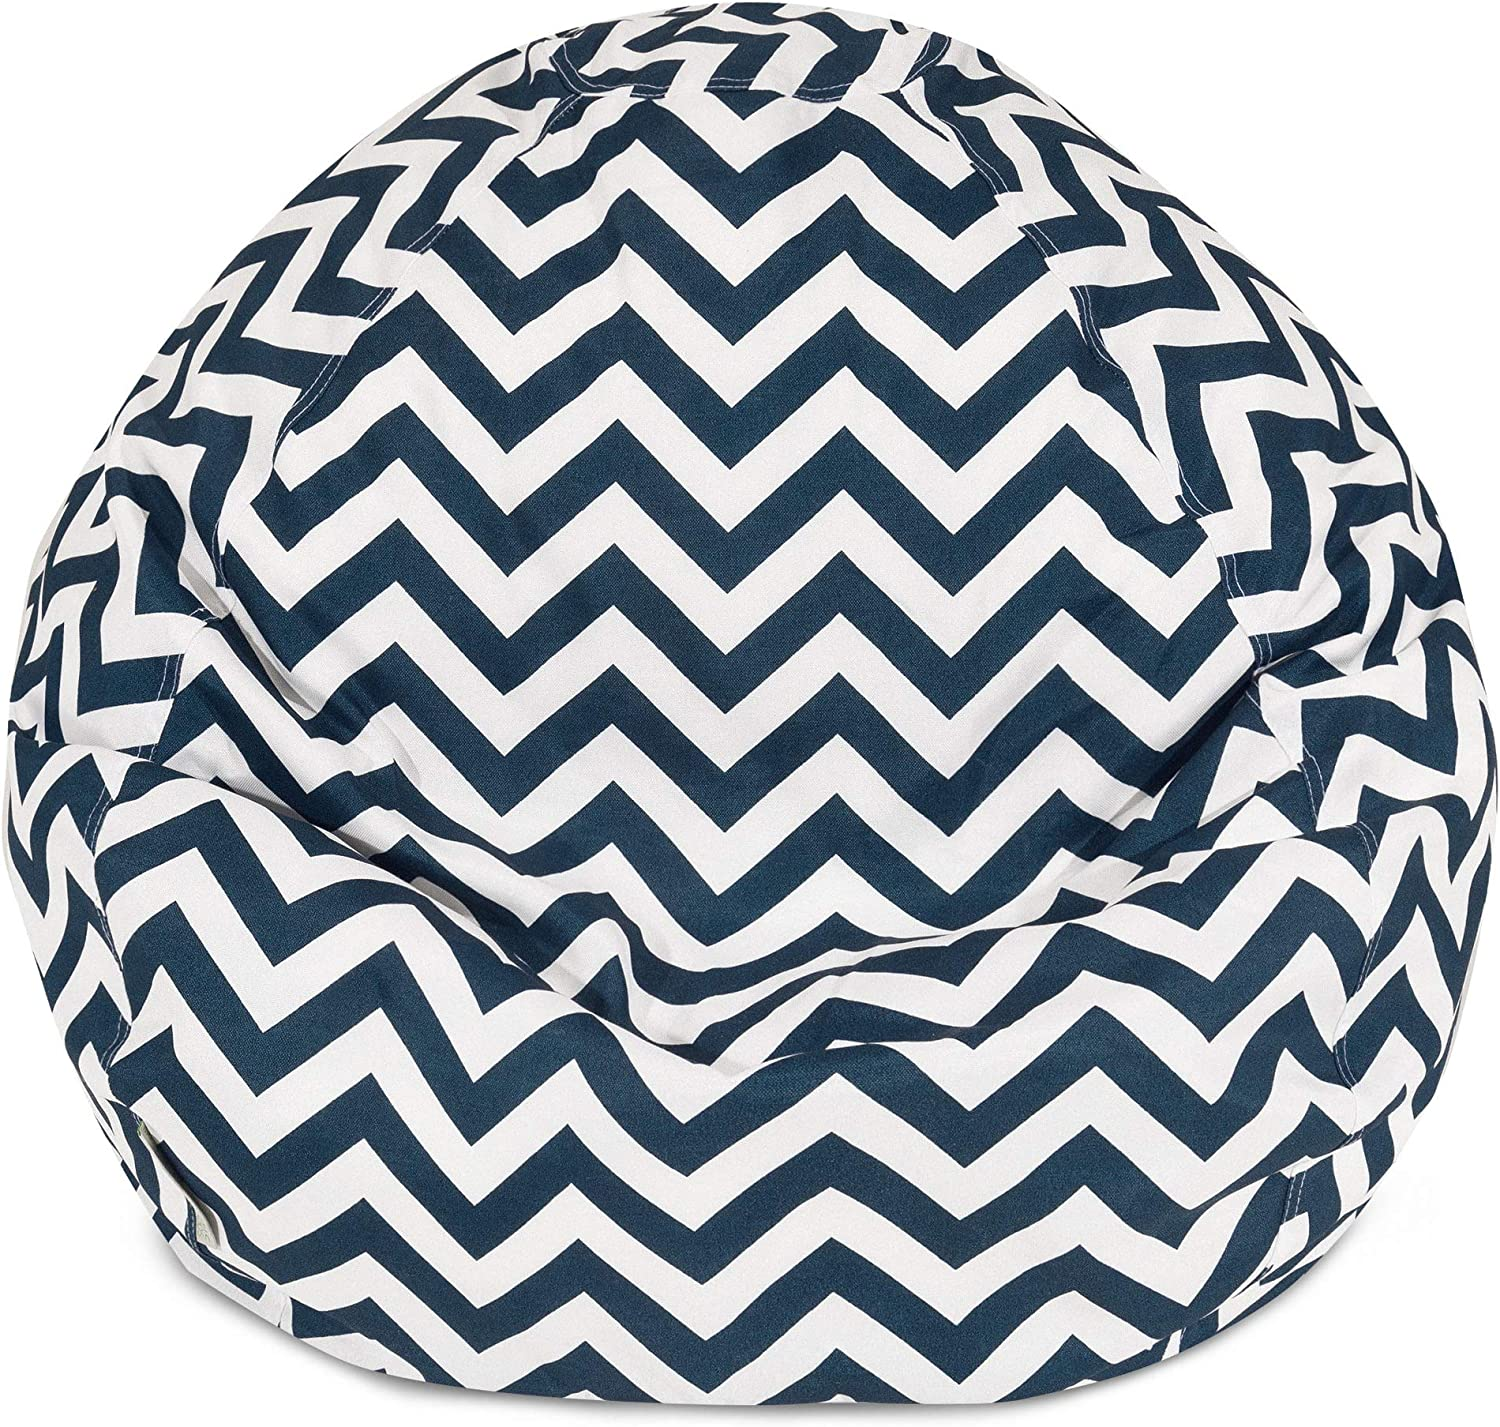 Majestic Home Goods Classic Bean Bag Chair  Chevron Giant Classic Bean Bags for Small Adults and Kids (28 x 28 x 22 Inches) (Navy bluee)